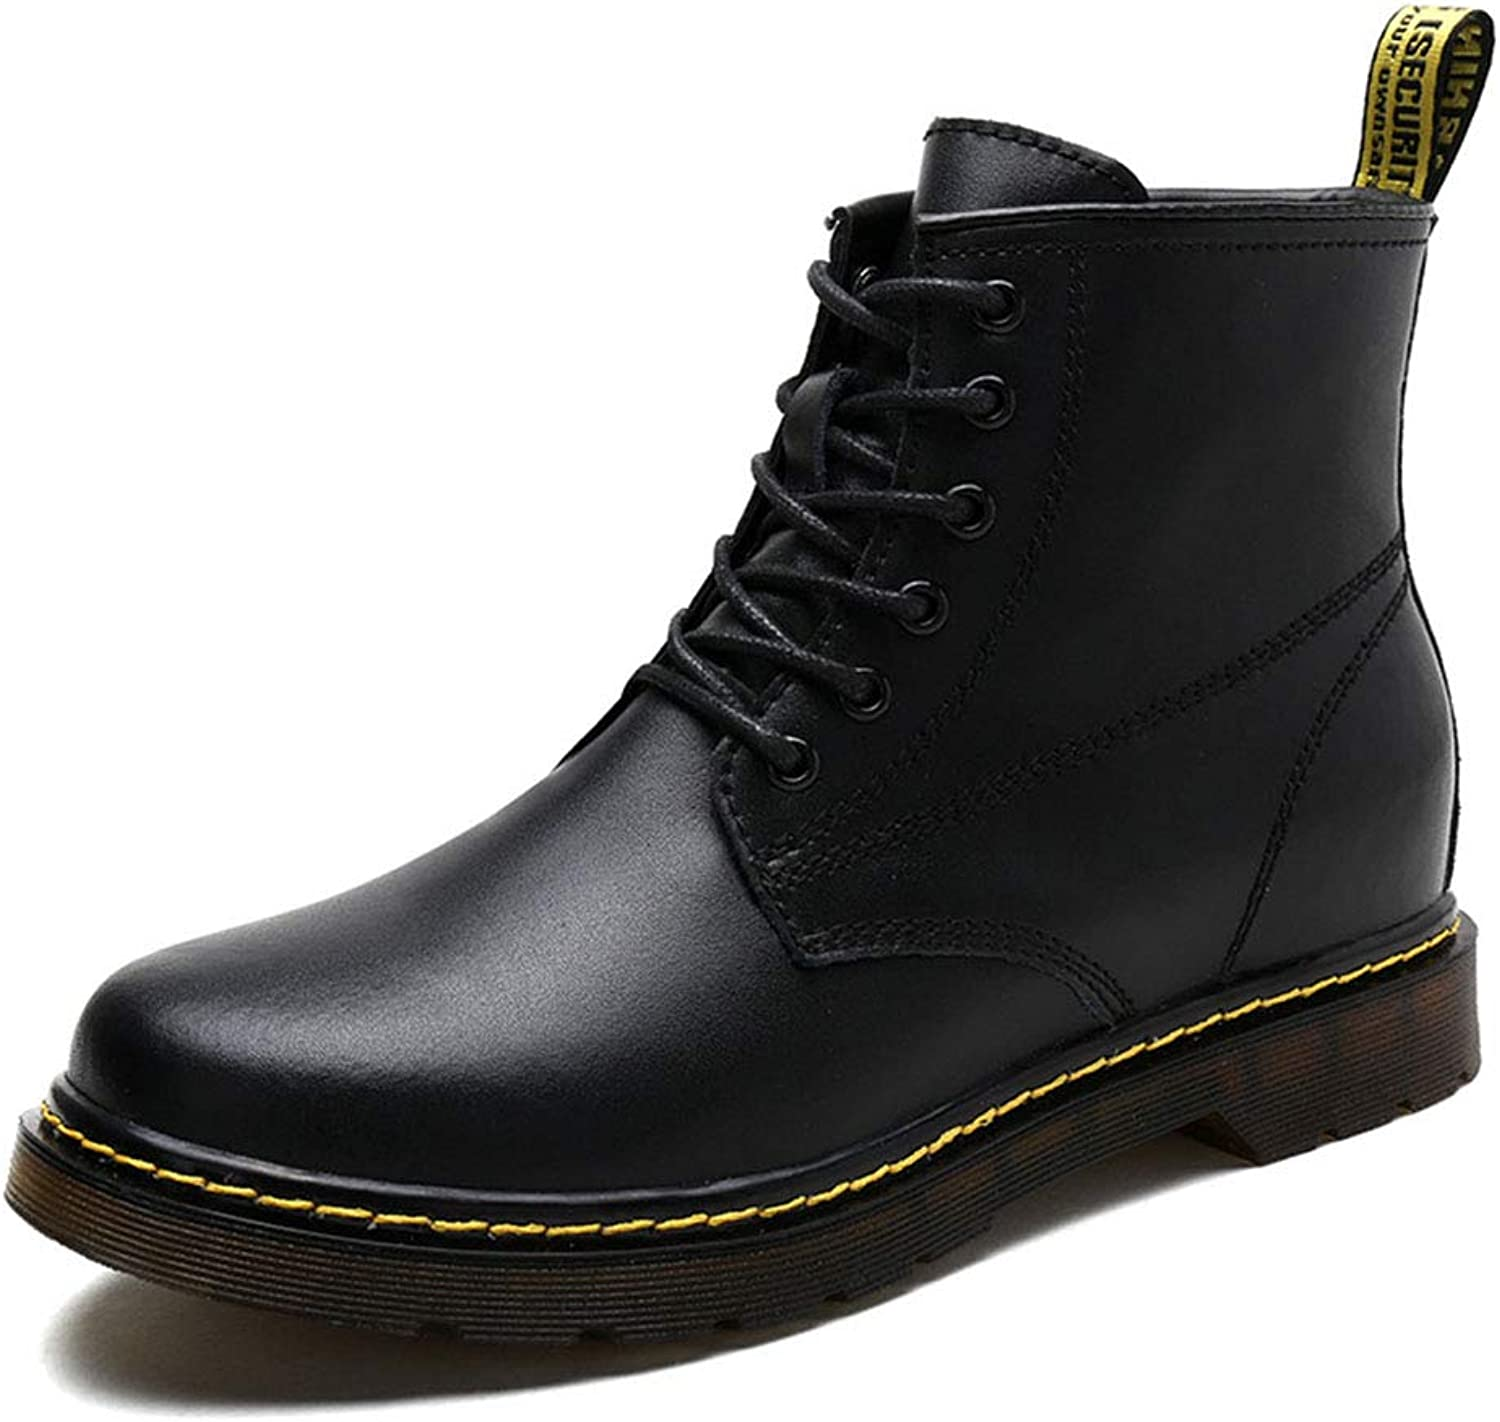 Men's shoes, Leather Plus Velvet Ankle Boots Fall Winter New Increased Martin Boots Outdoor Lace-Up Hiking shoes,A,41